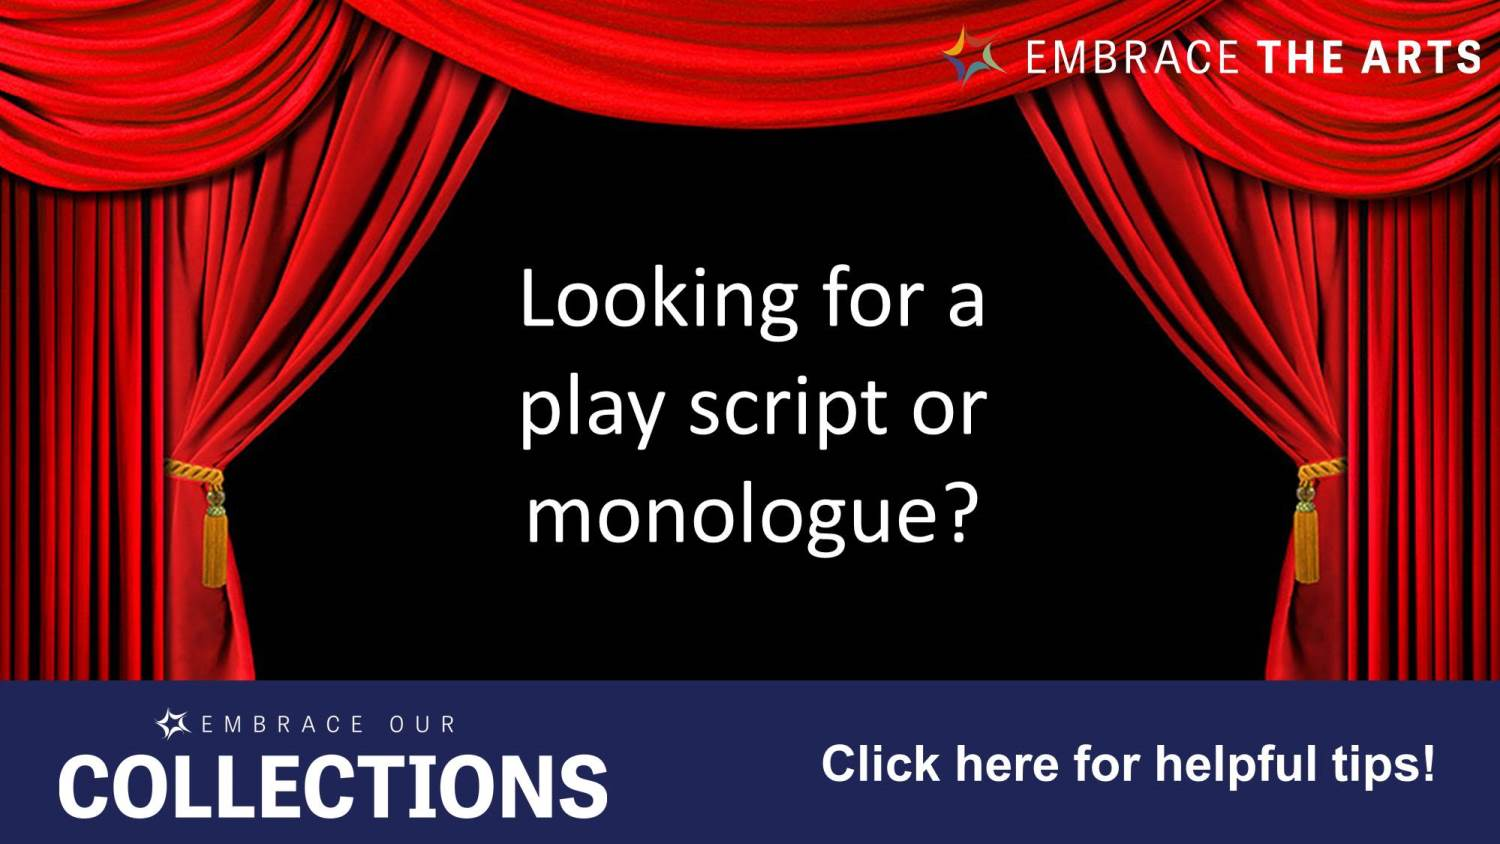 Show more about Need help finding a play script or monologue?